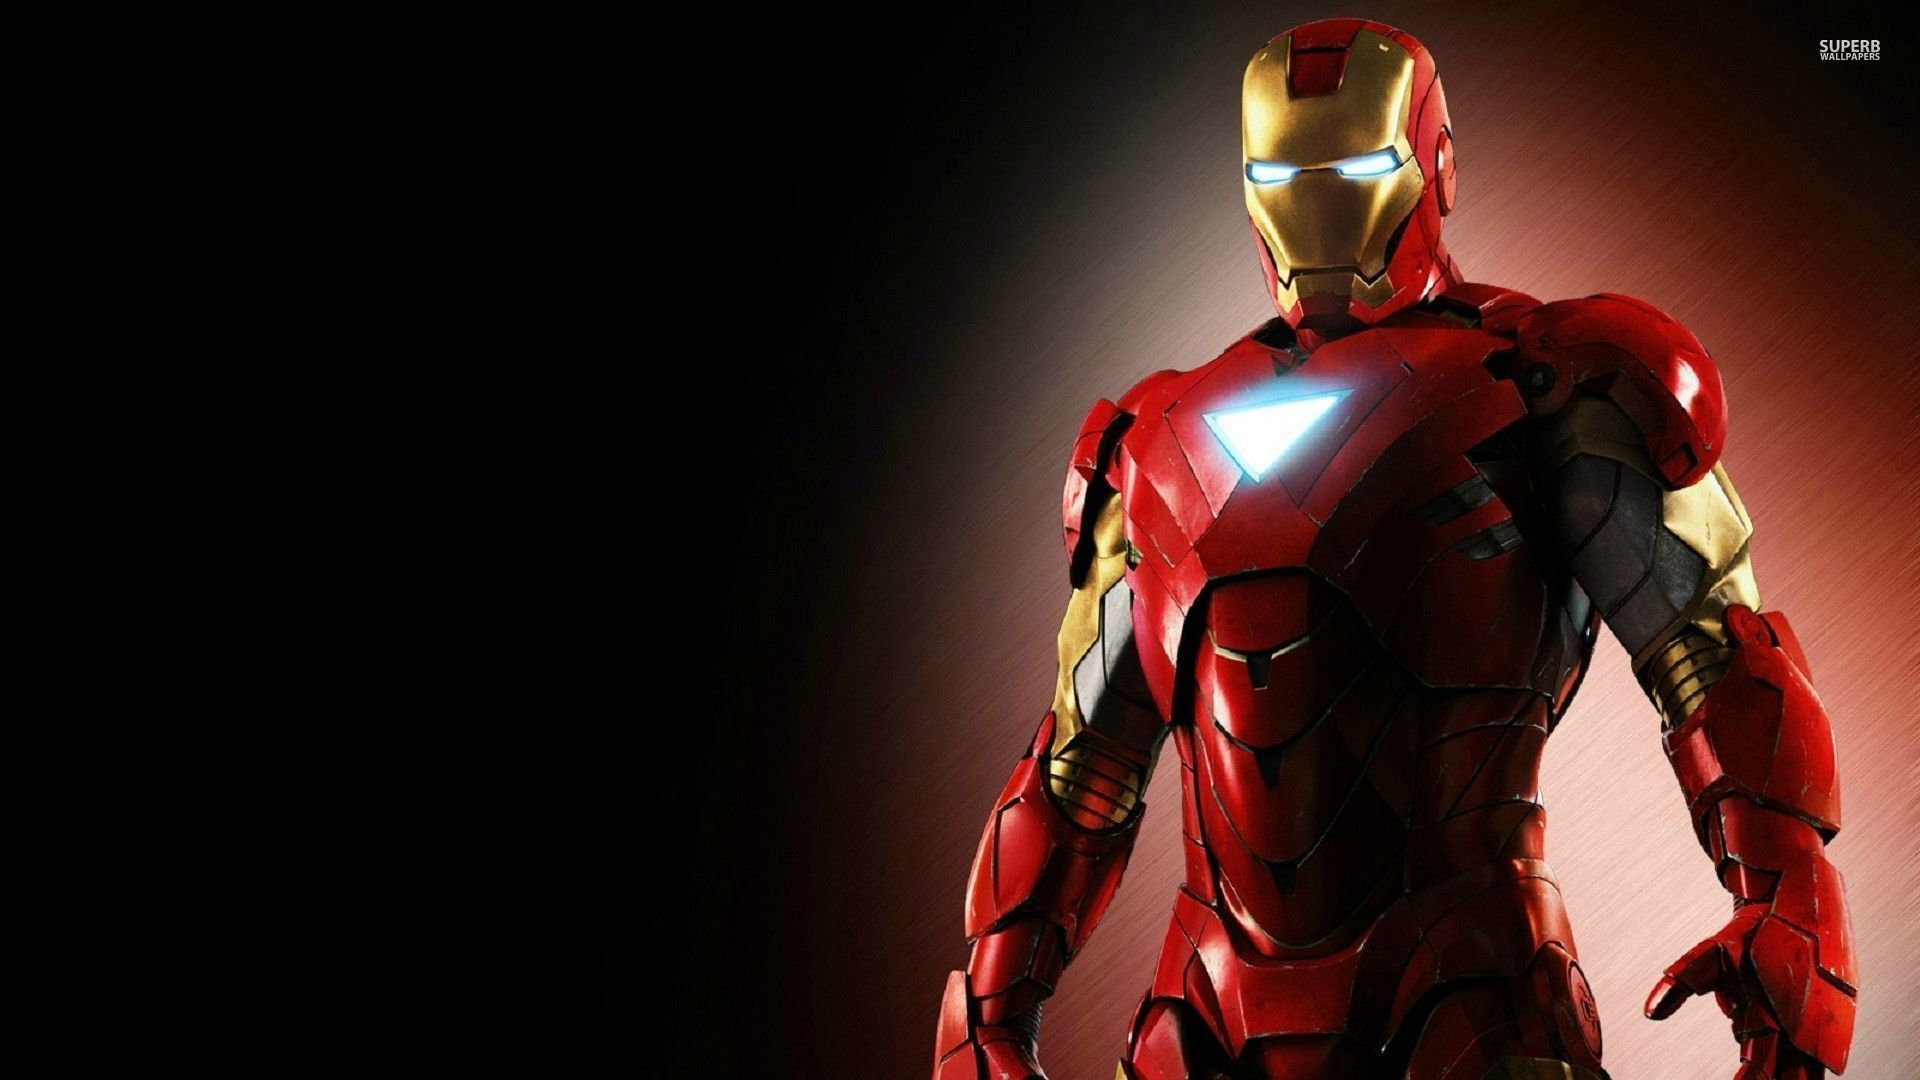 India Wallpaper 3d Iron Man 4 Hd Free Wallpaper Download